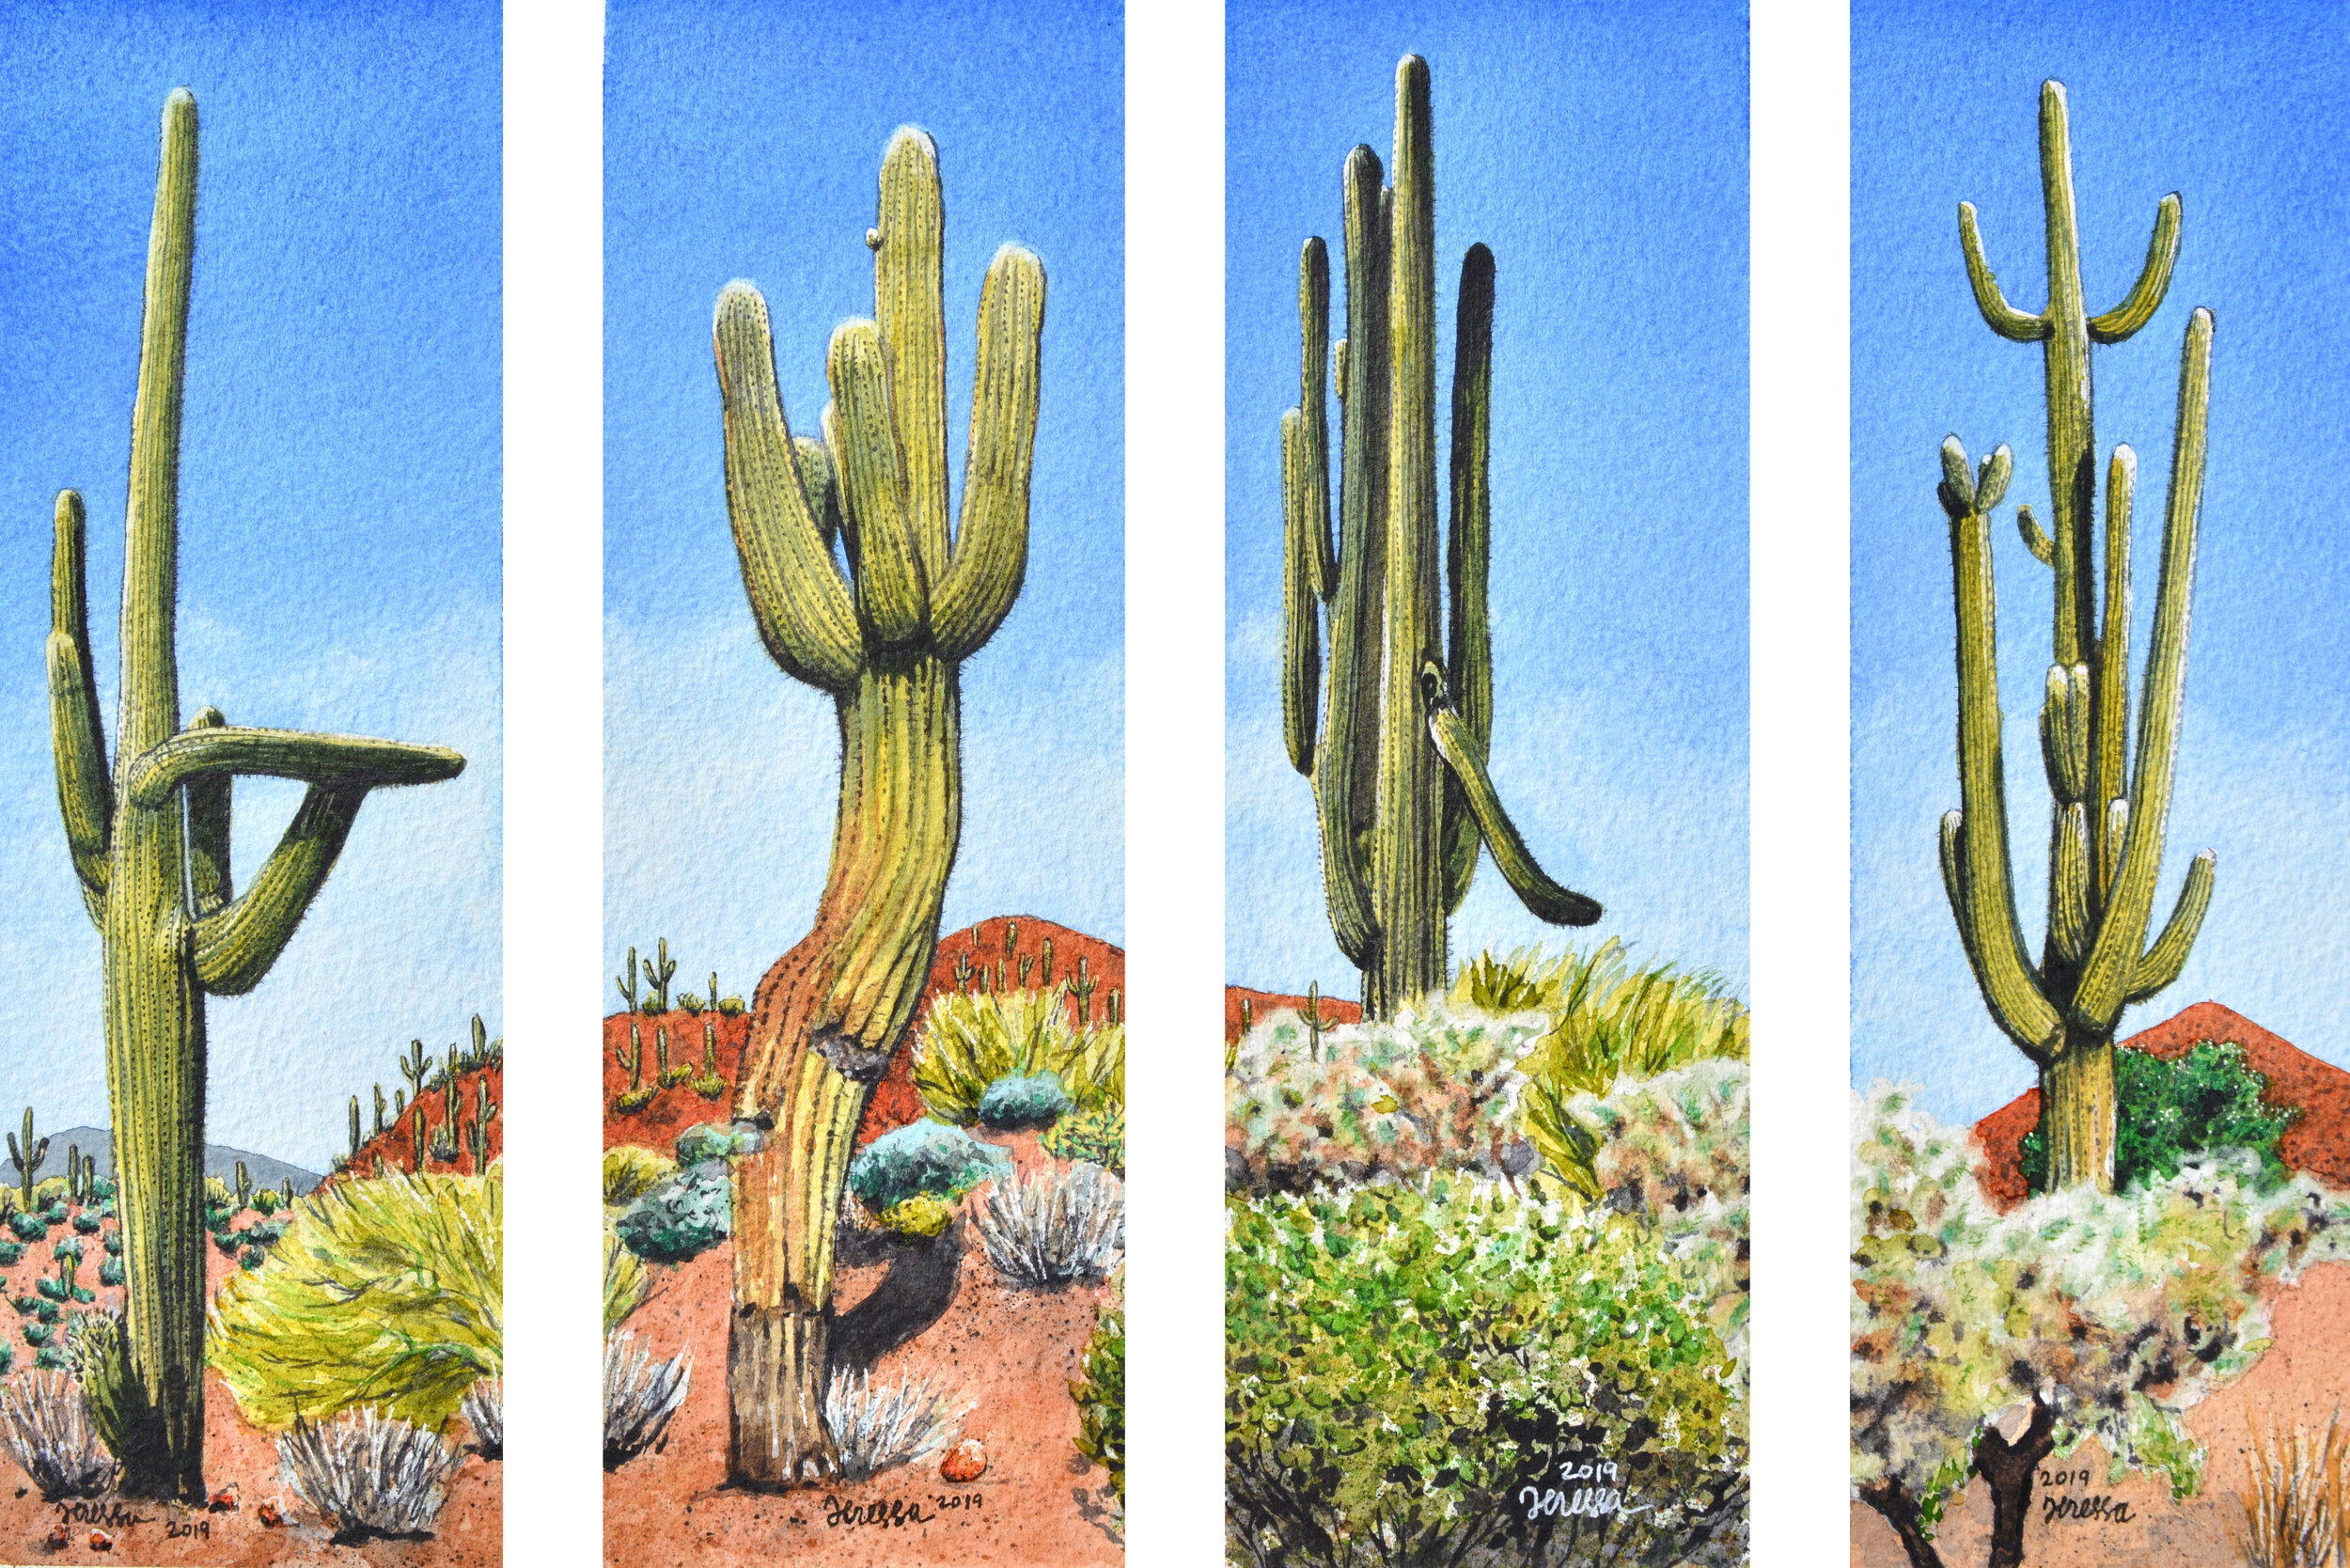 """Tentative series title: """"Cacticatures"""" Each panel measures 3x9"""", Watercolor on 300 lb. Arches cold press watercolor paper This series is on hold for upcoming exhibition."""